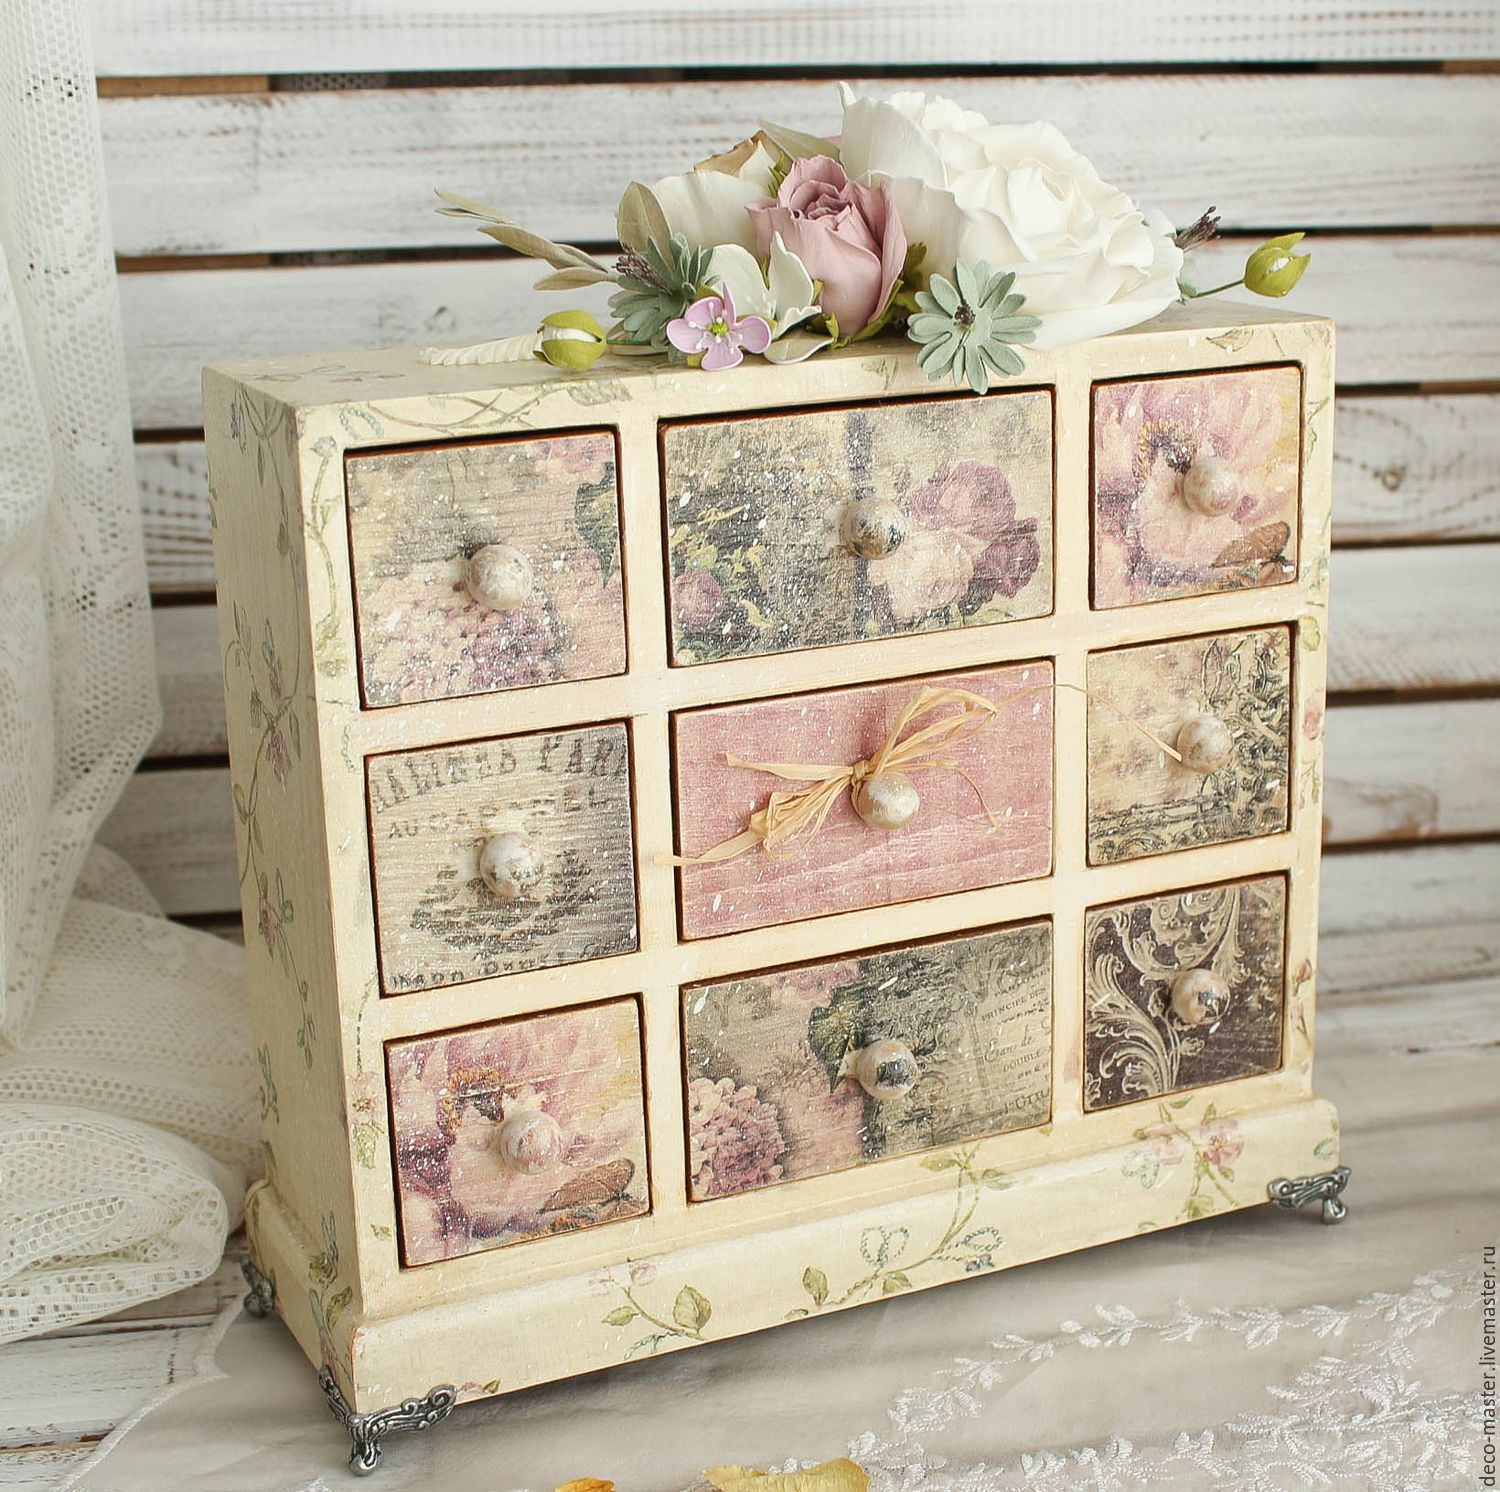 Small cabinet with decoupage drawers painted furniture - Decoupage con servilletas en muebles ...